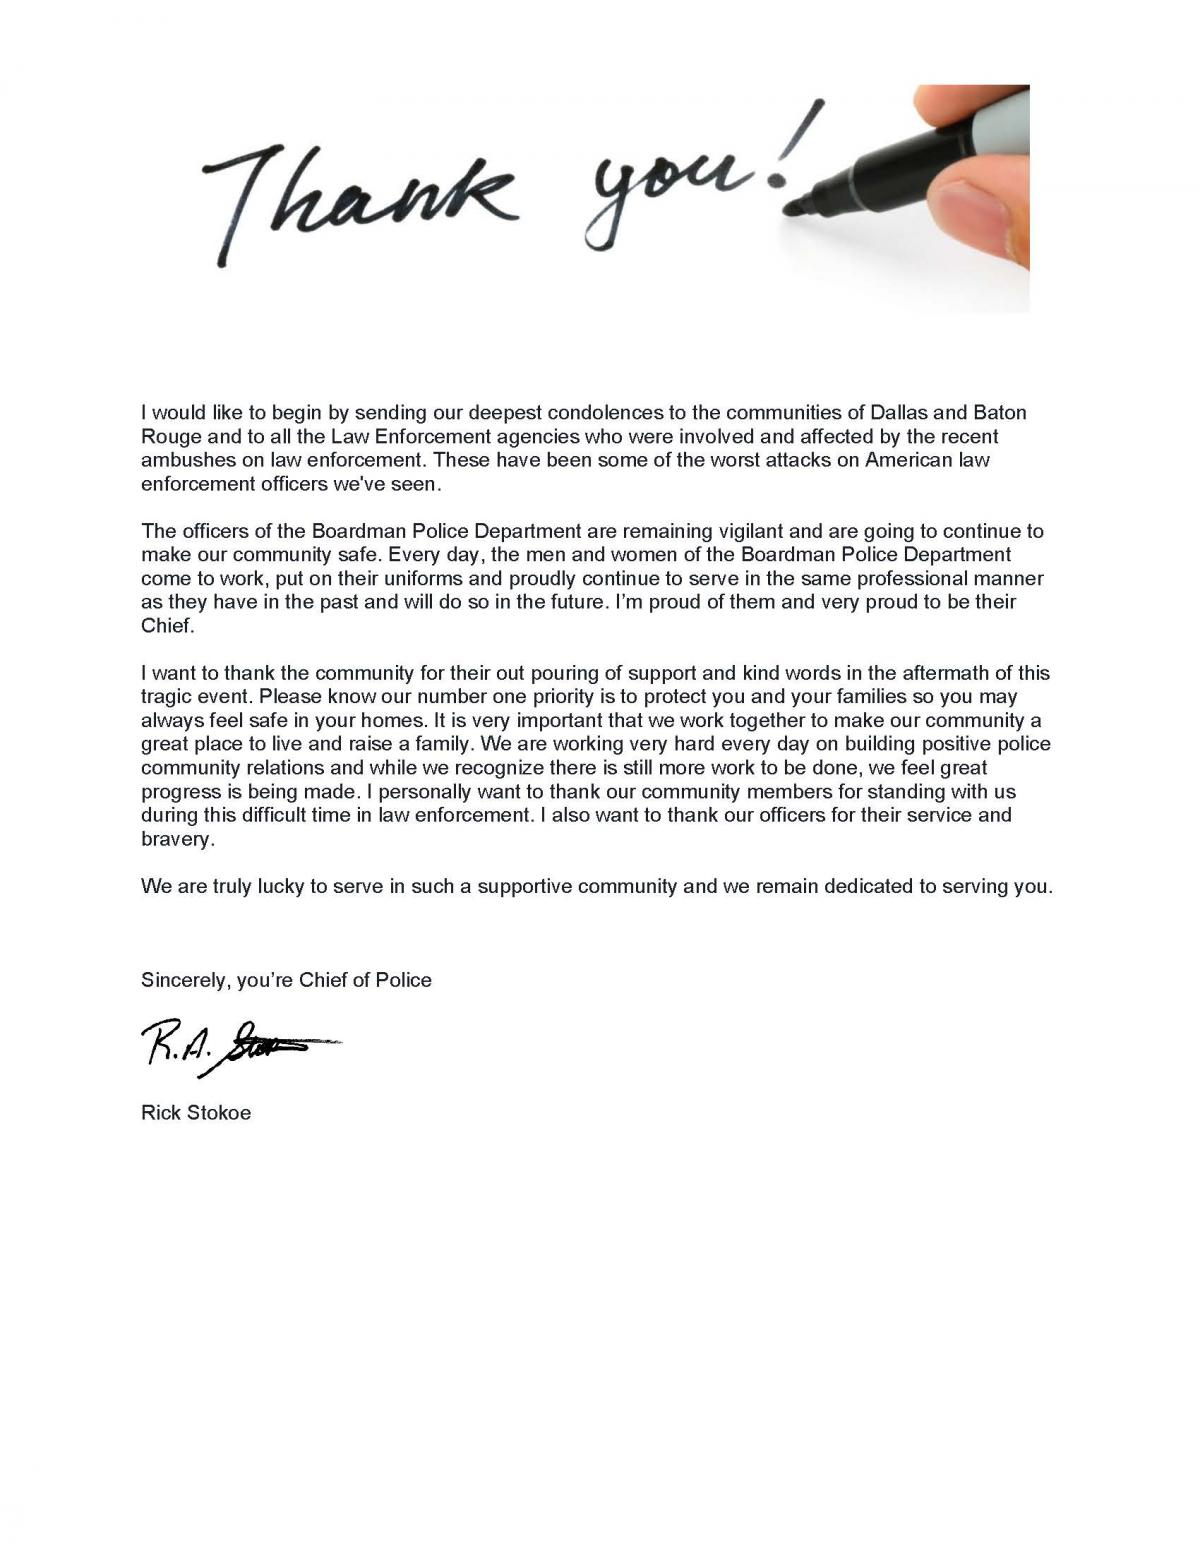 a letter of thank you from the chief of police